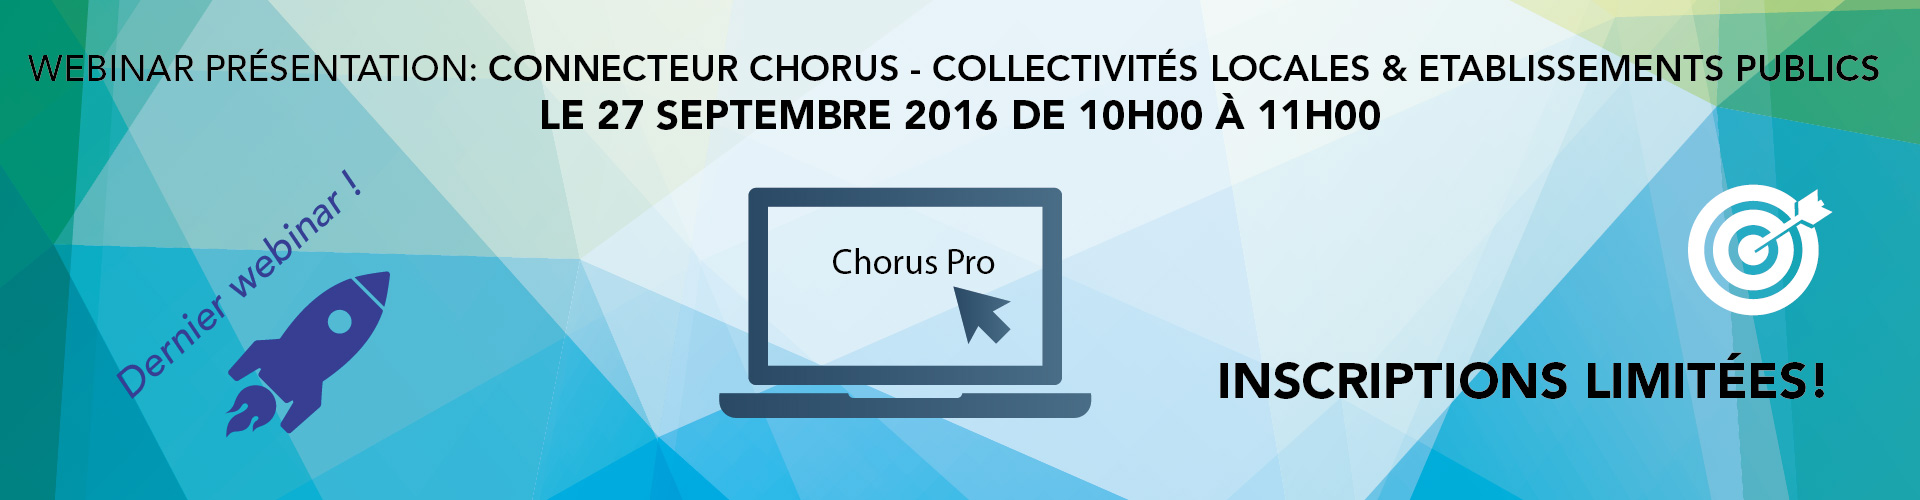 Slide-CLT-Webinar-connecteur-chorus-270916